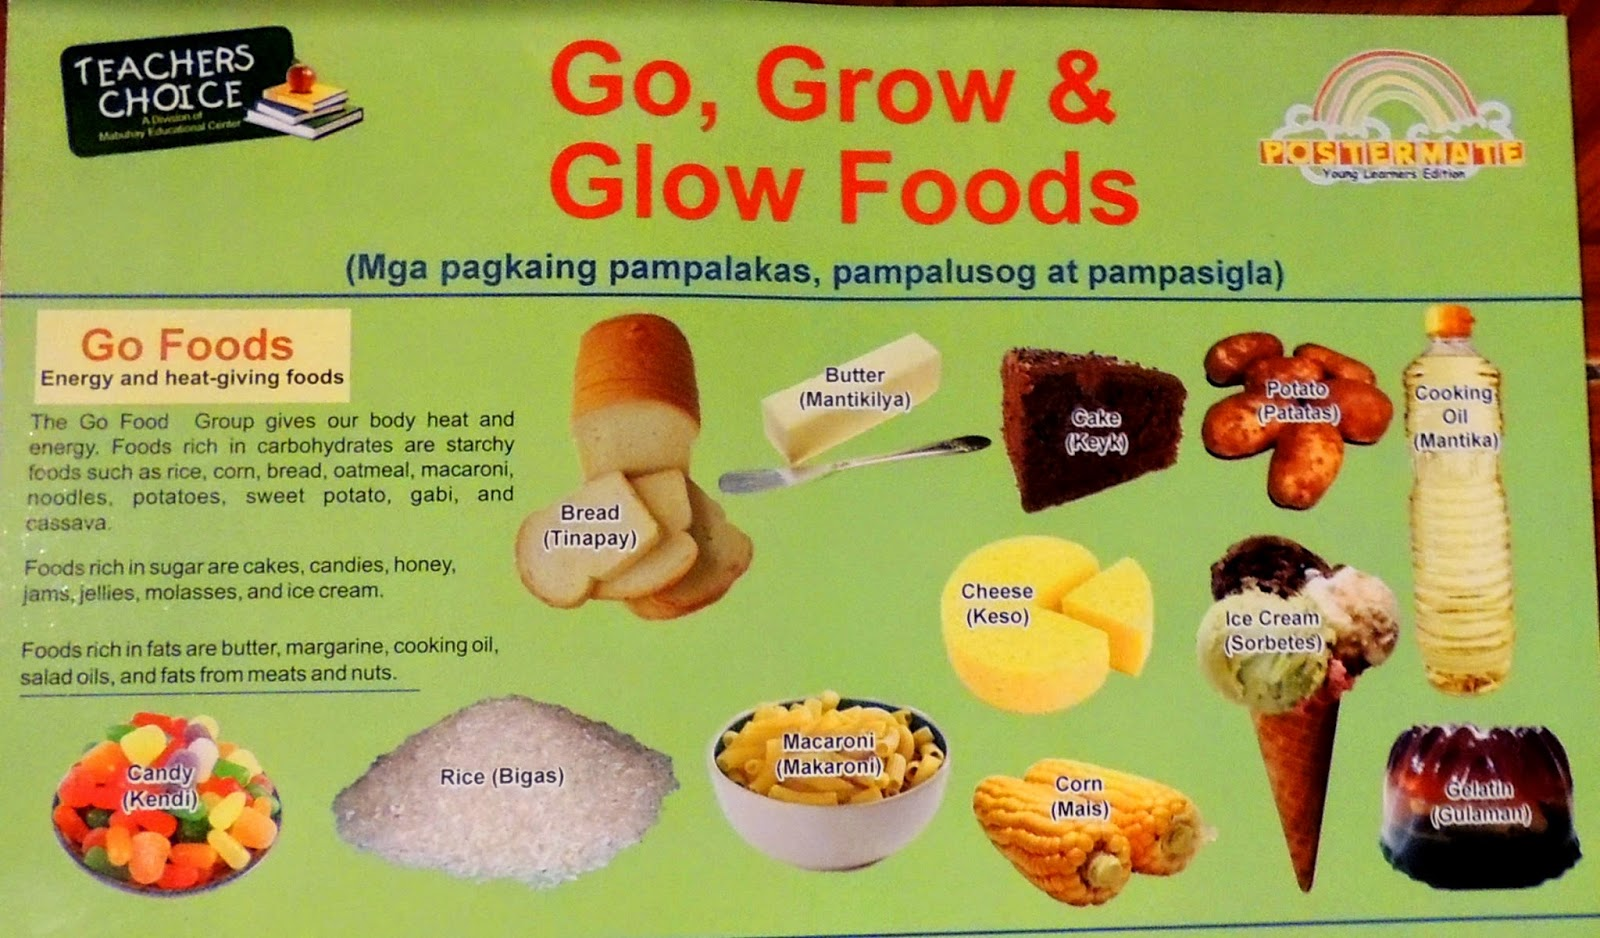 Basic Go Grow Glow Foods